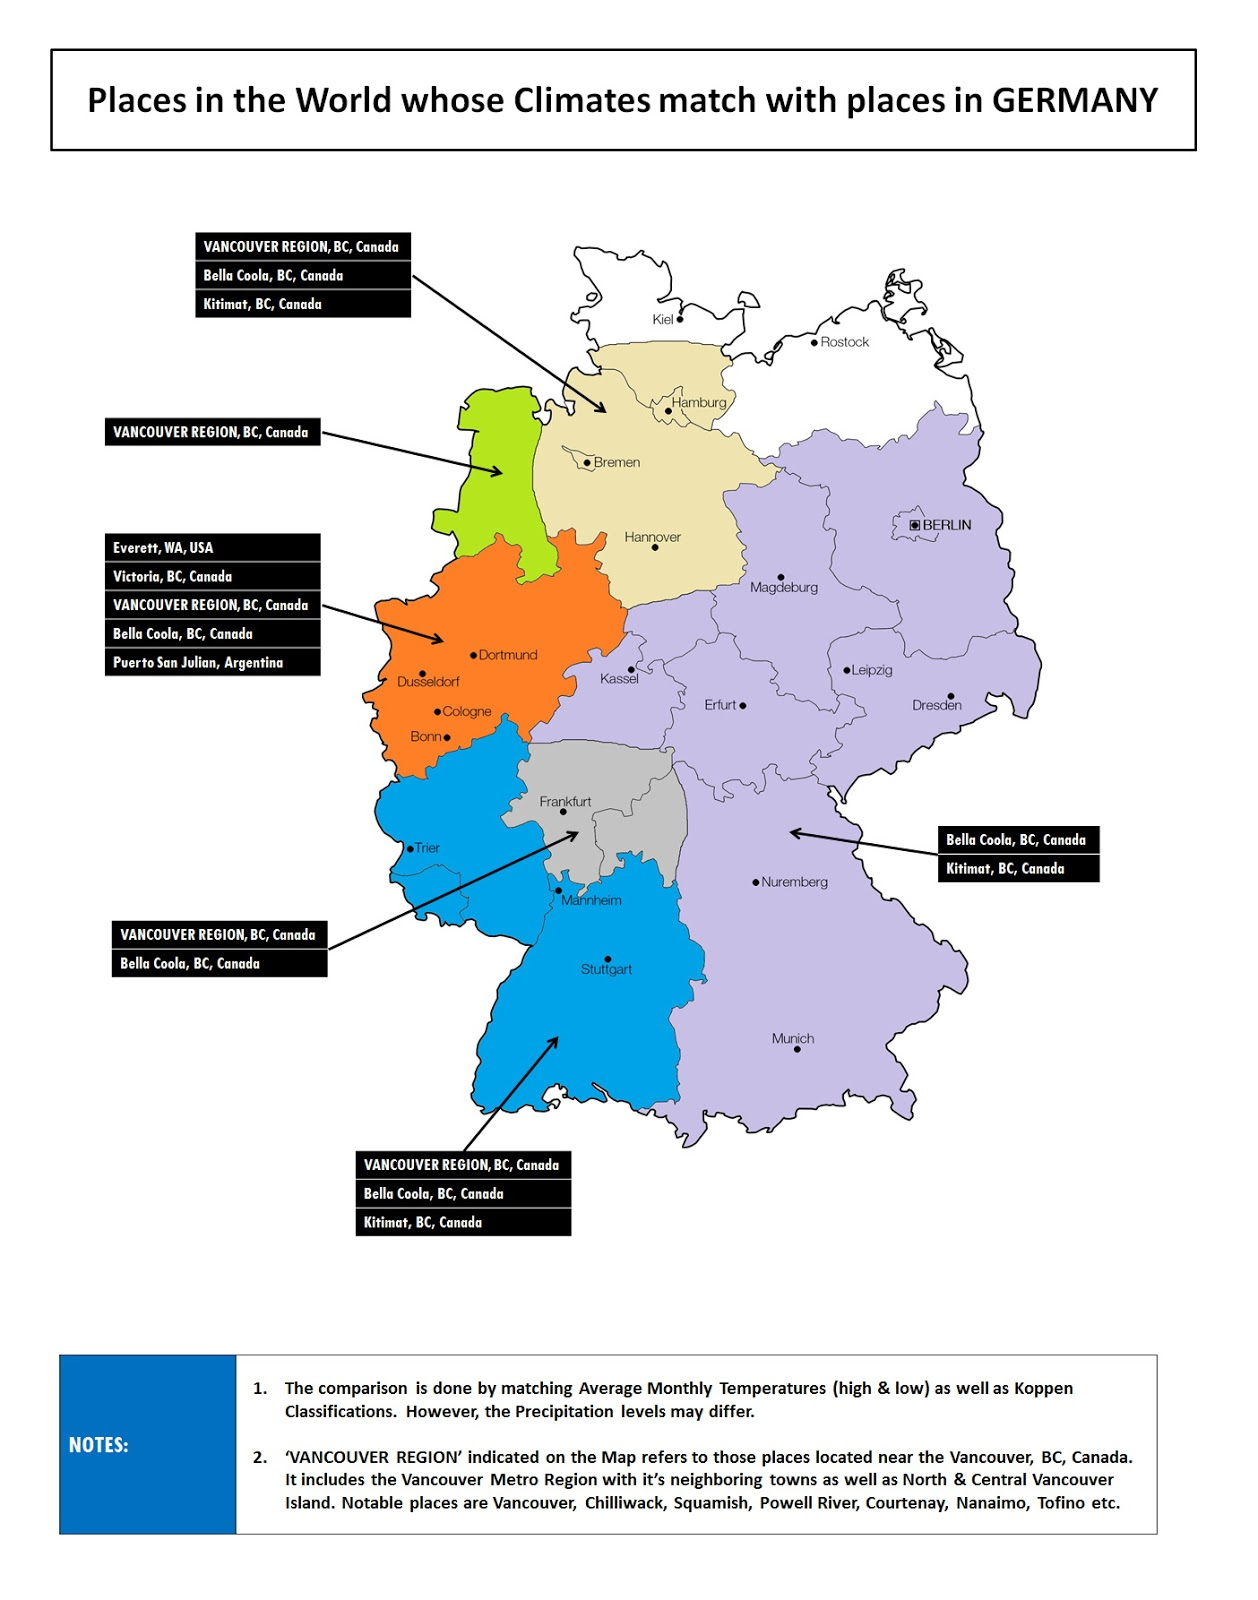 Places in the World whose climates match with places in Germany